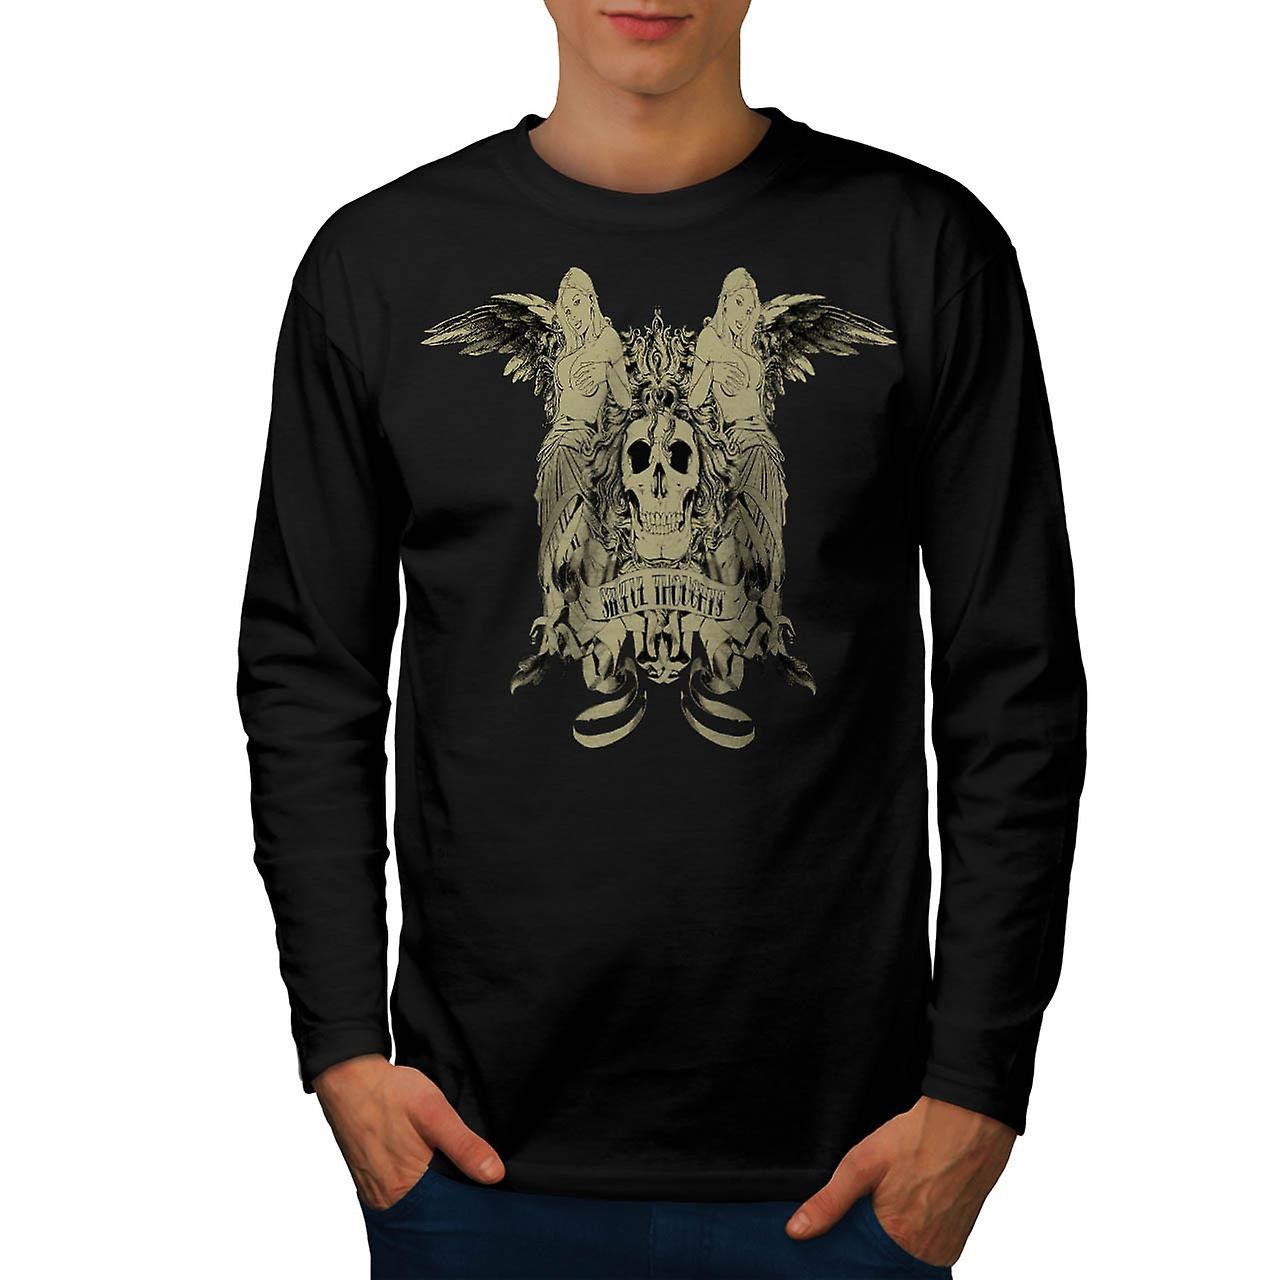 Sinful Thoughts City Skull Angel Men Black Long Sleeve T-shirt | Wellcoda